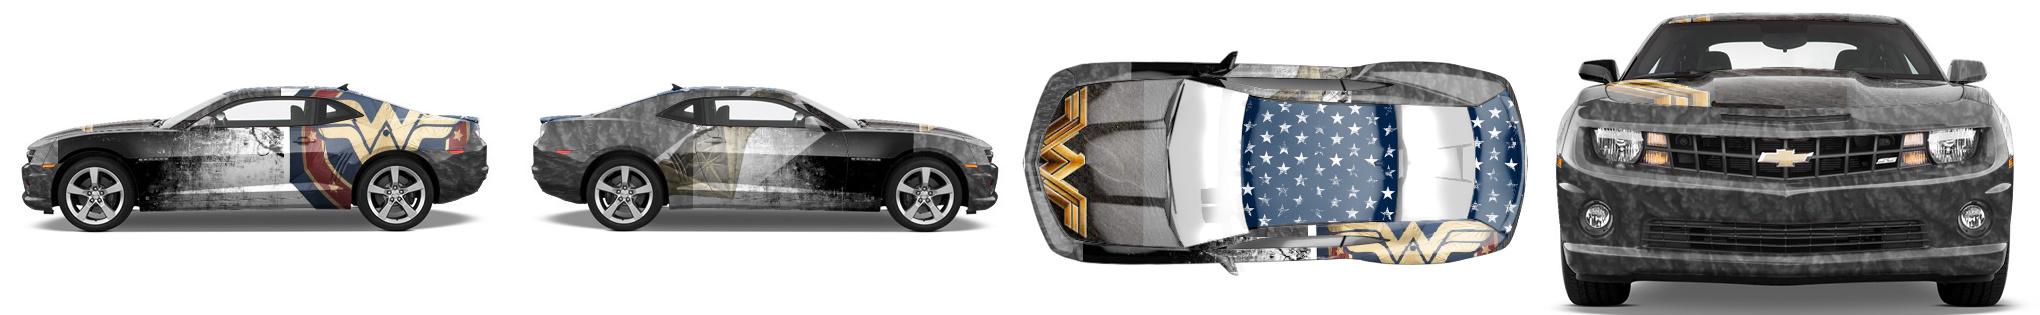 Muscle Car Wrap #52125